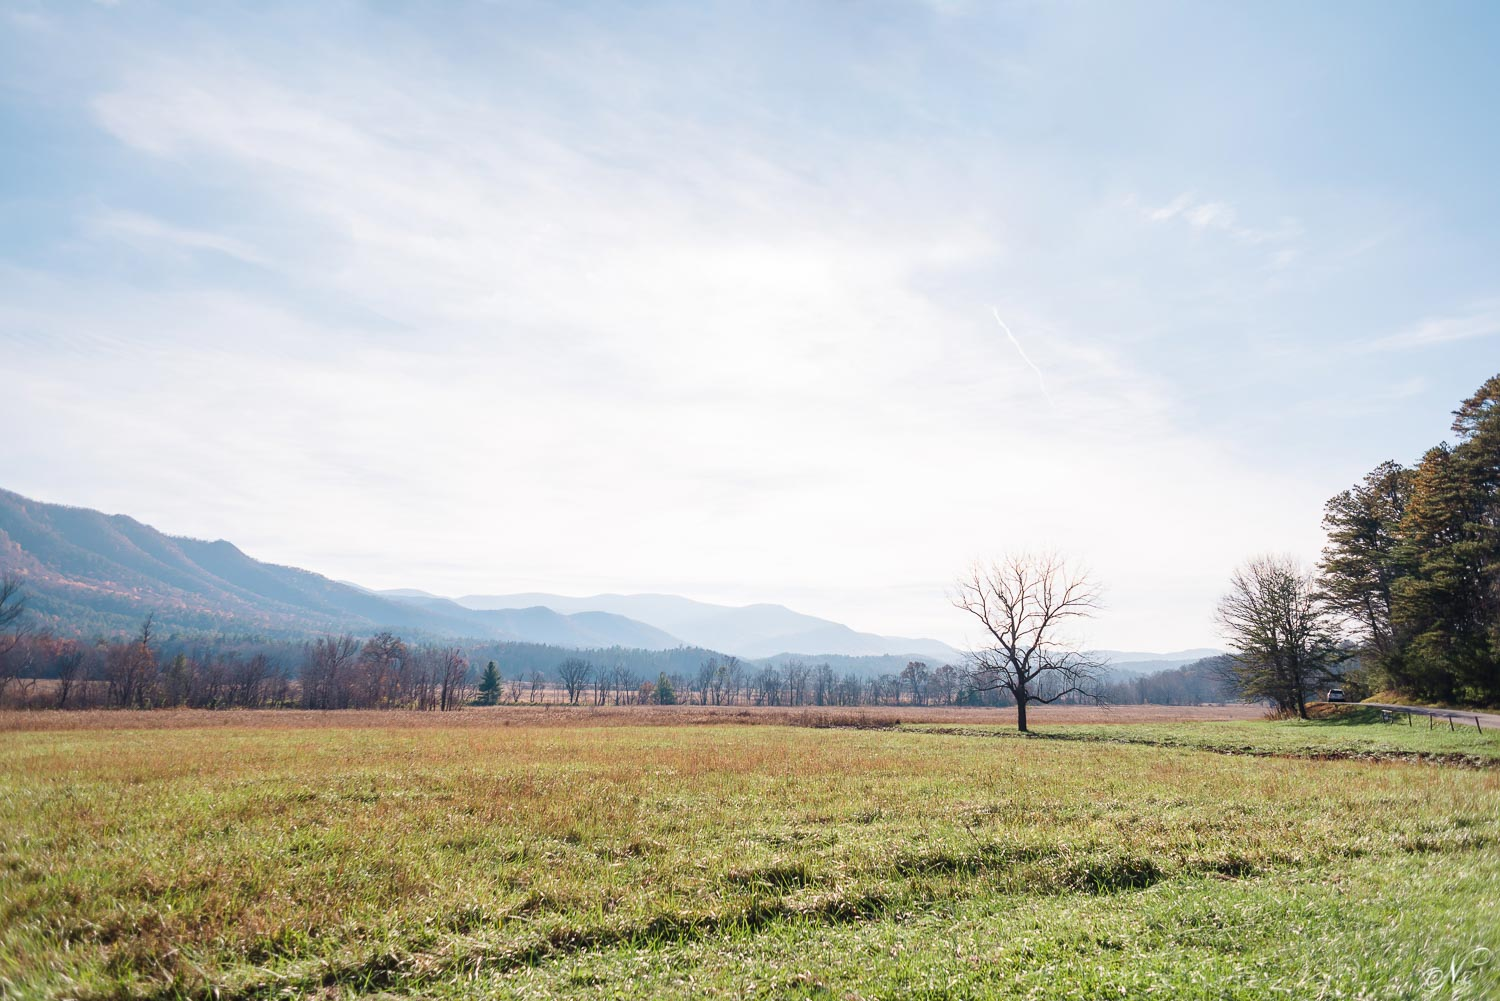 cades cove view of open field and bare tree near Hyaat LN